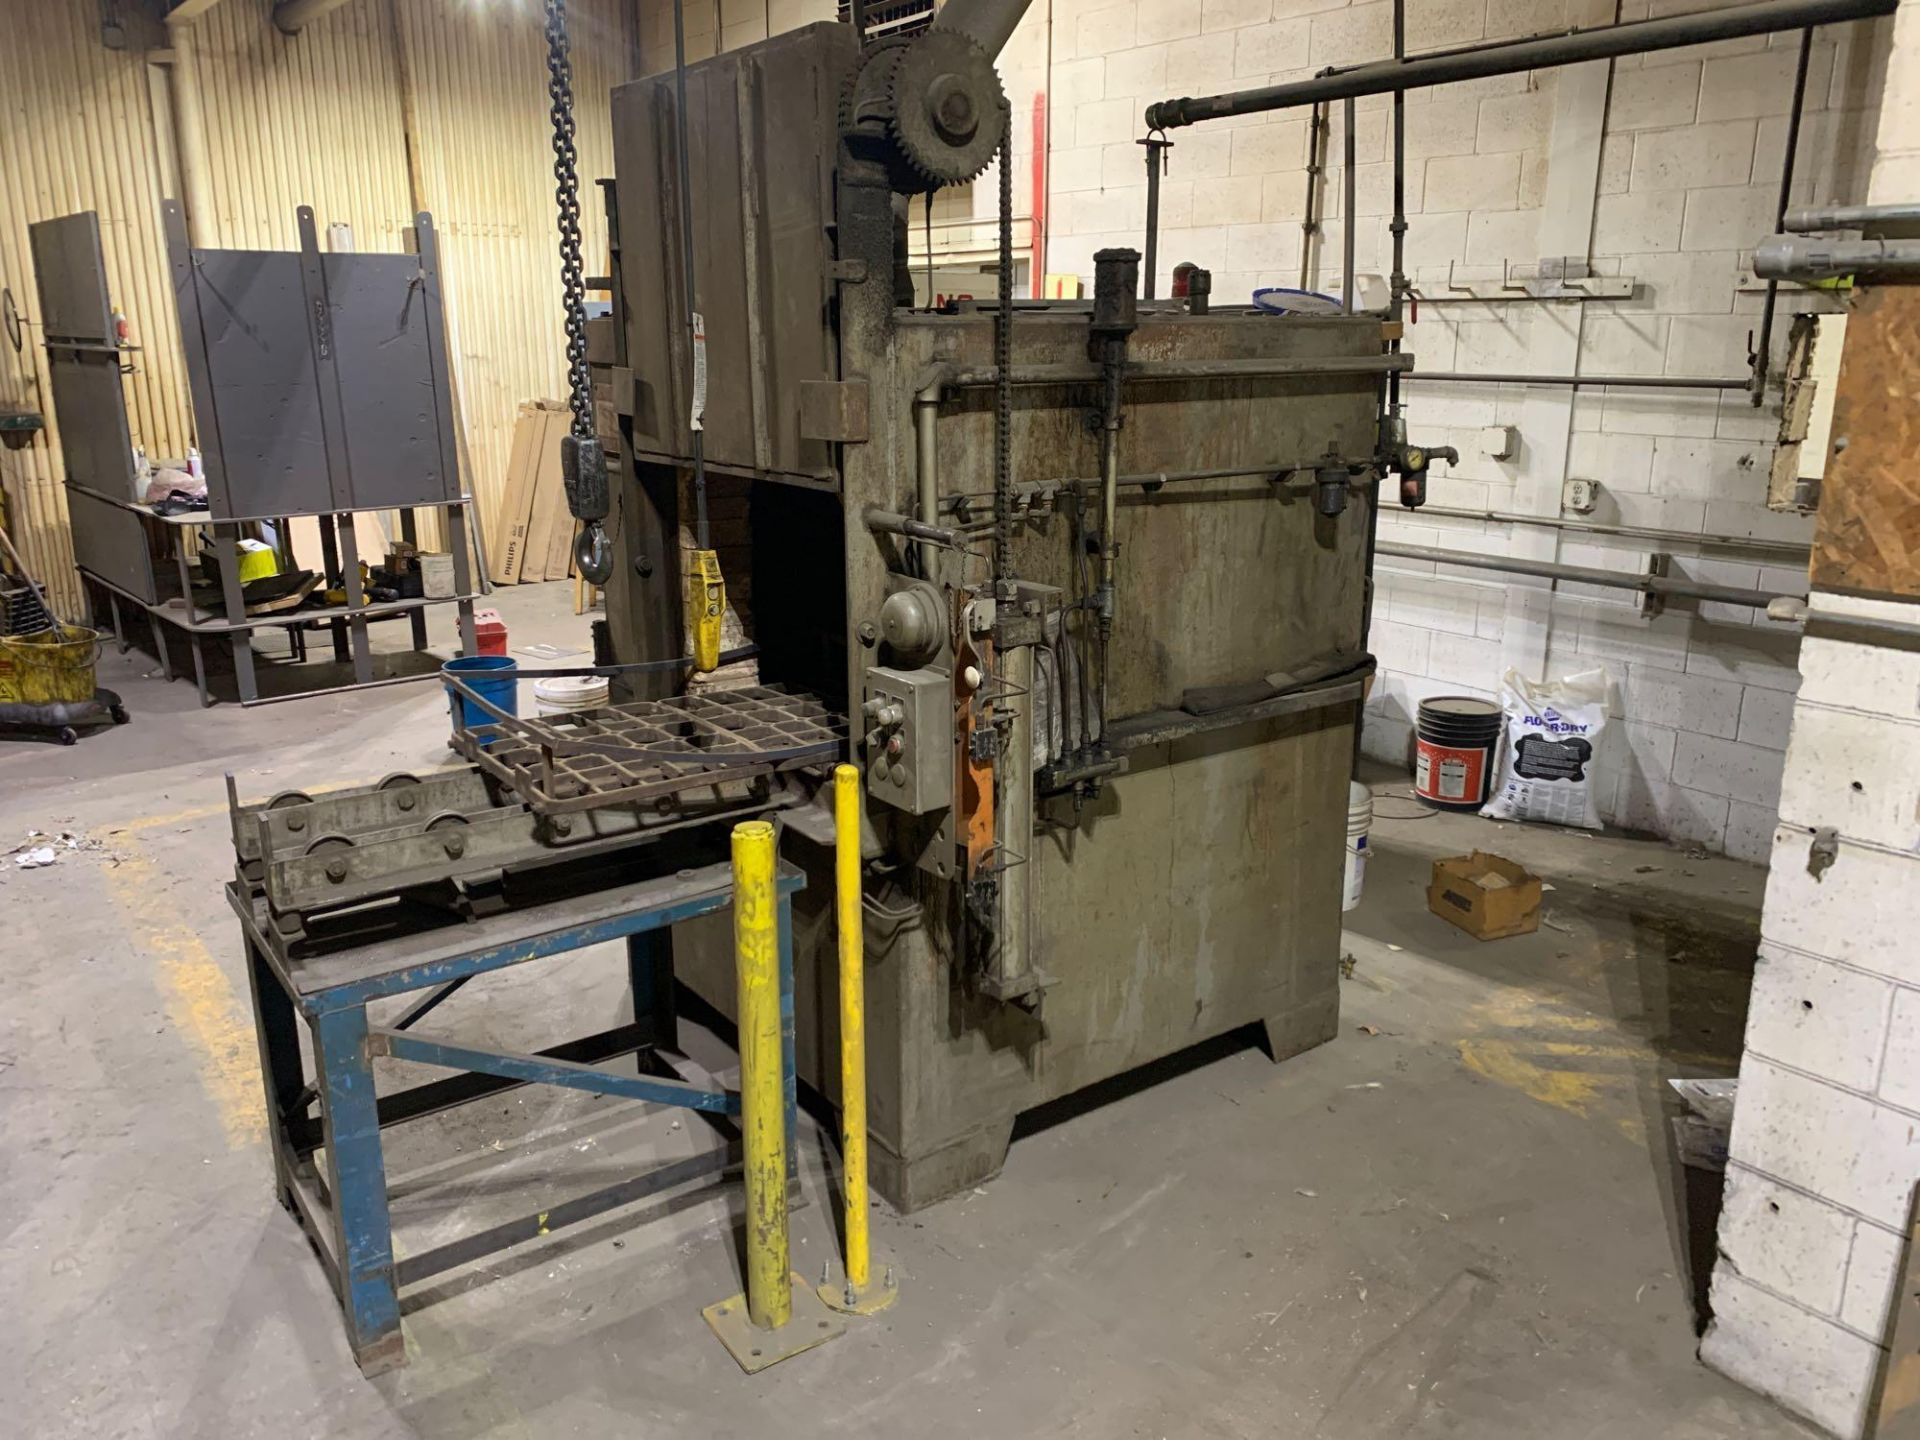 Dow Furnace Co. Electric Draw Furnace Seller States It Will Do At Least 1200 Degrees Model Bxe-24362 - Image 2 of 21